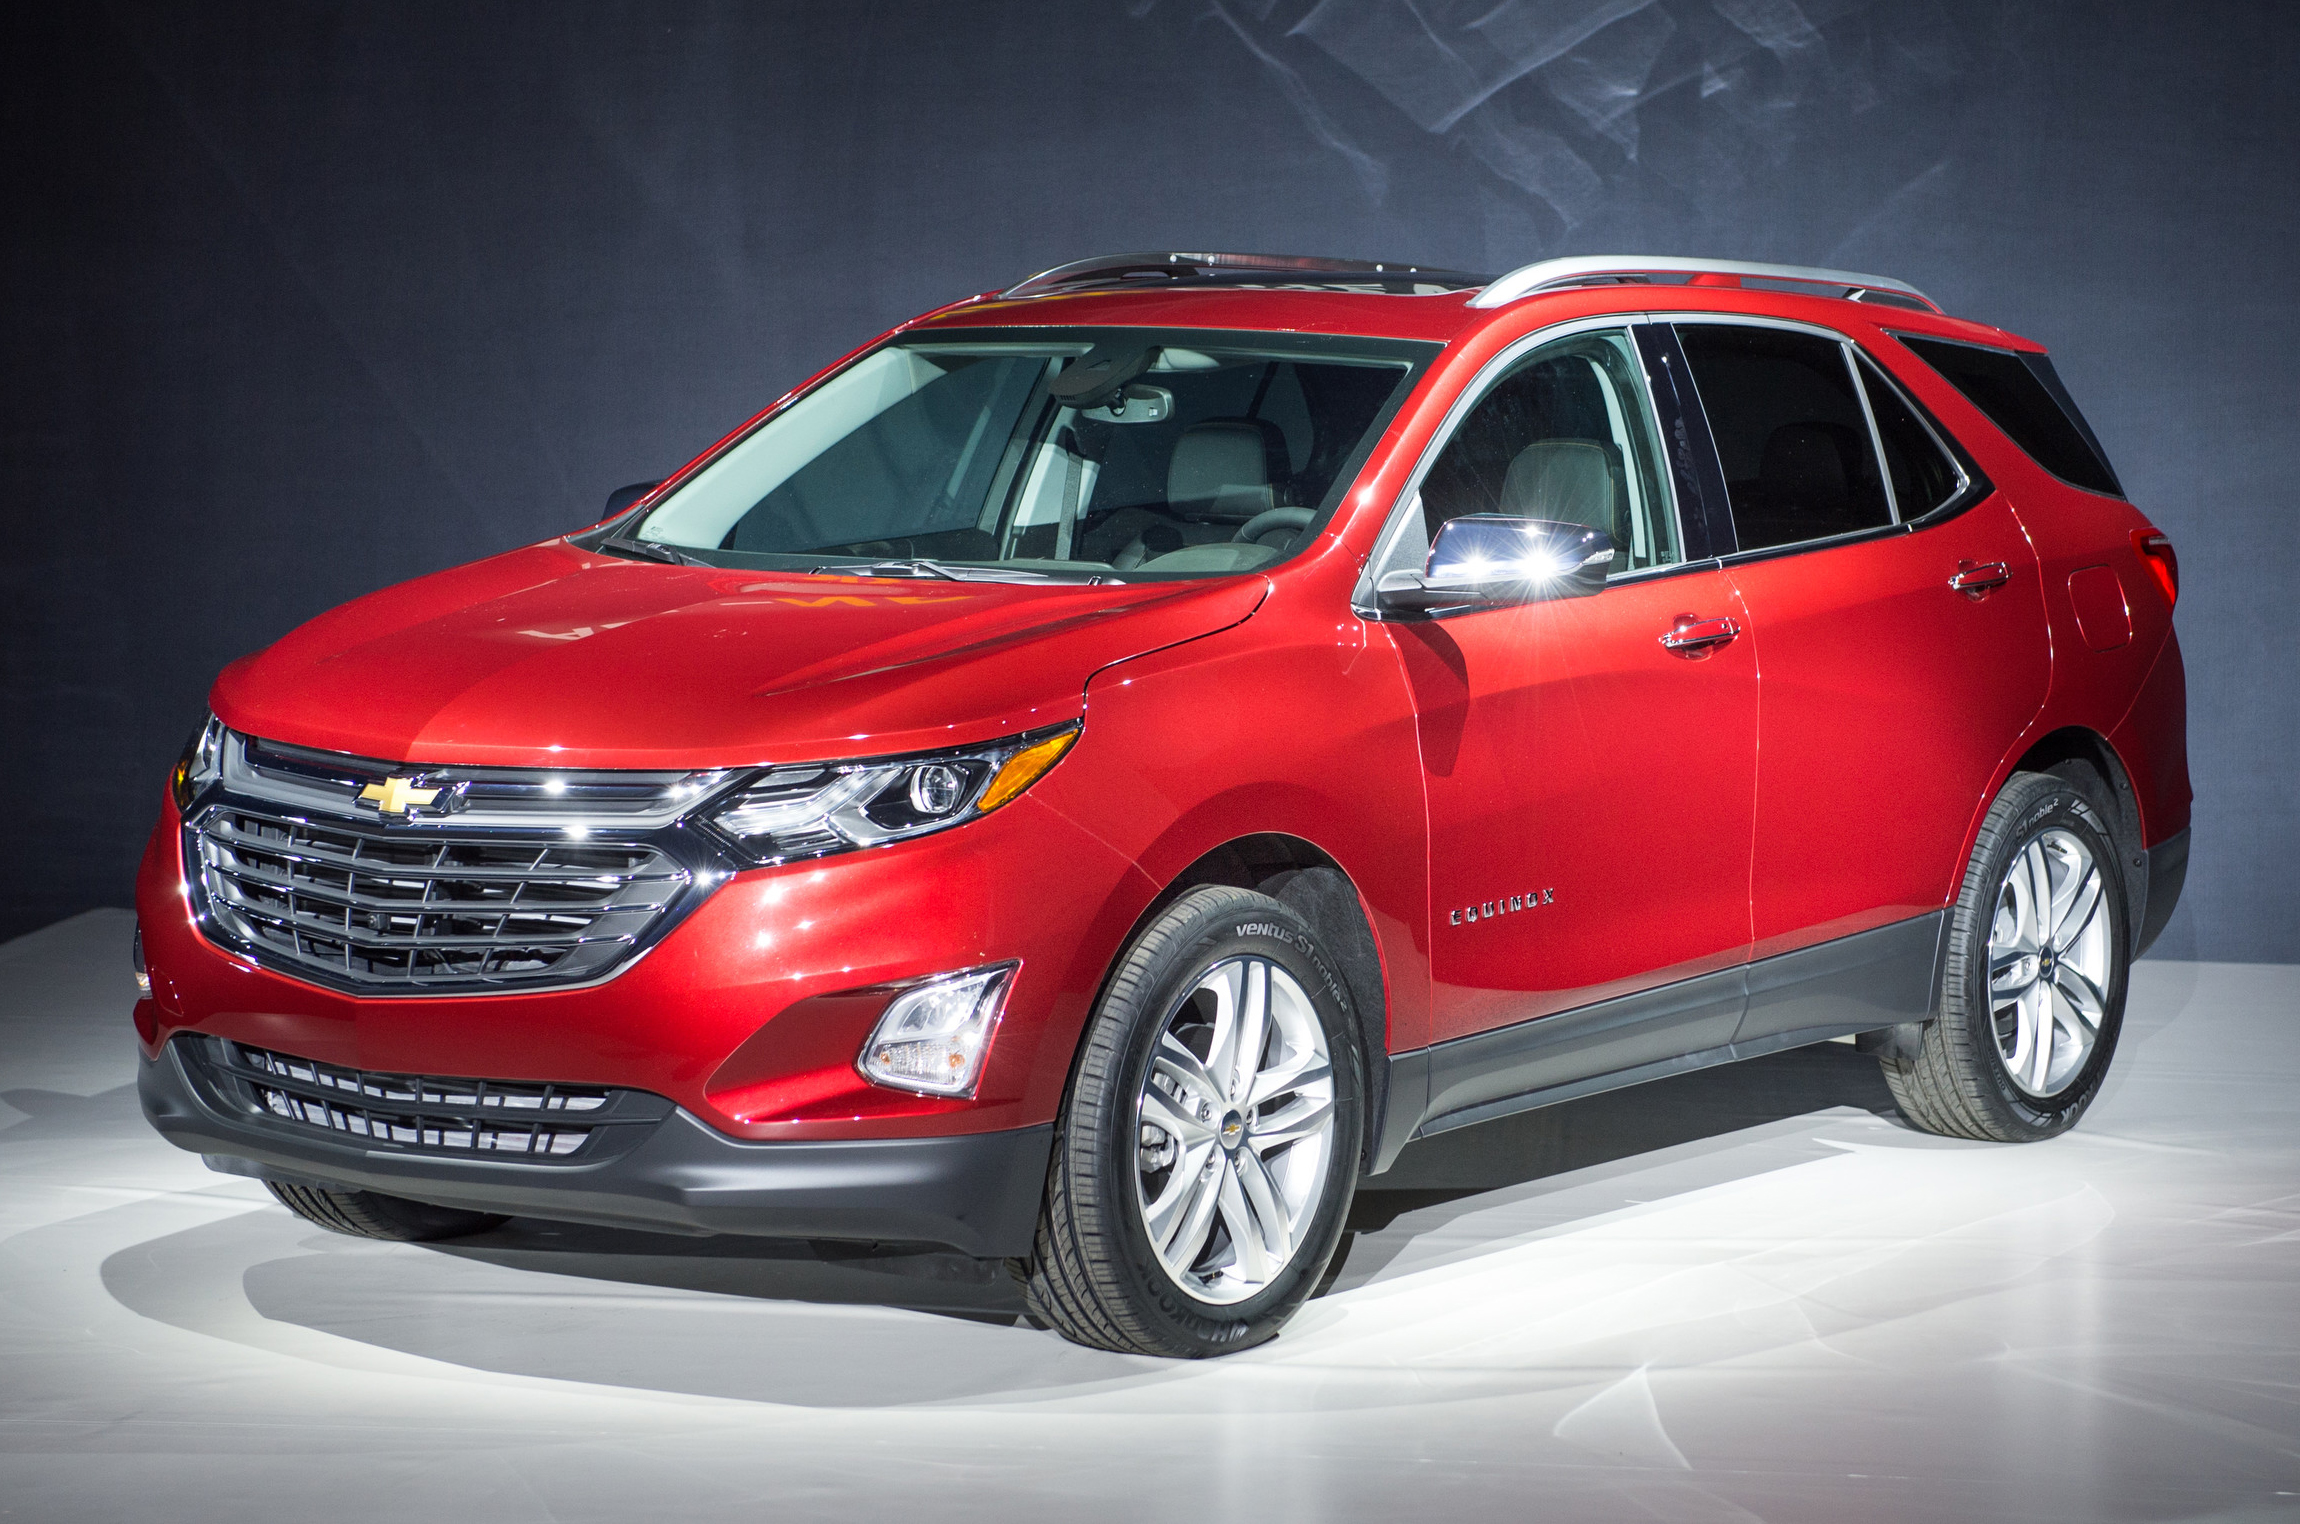 2018 chevrolet equinox review best car site for women vroomgirls. Black Bedroom Furniture Sets. Home Design Ideas